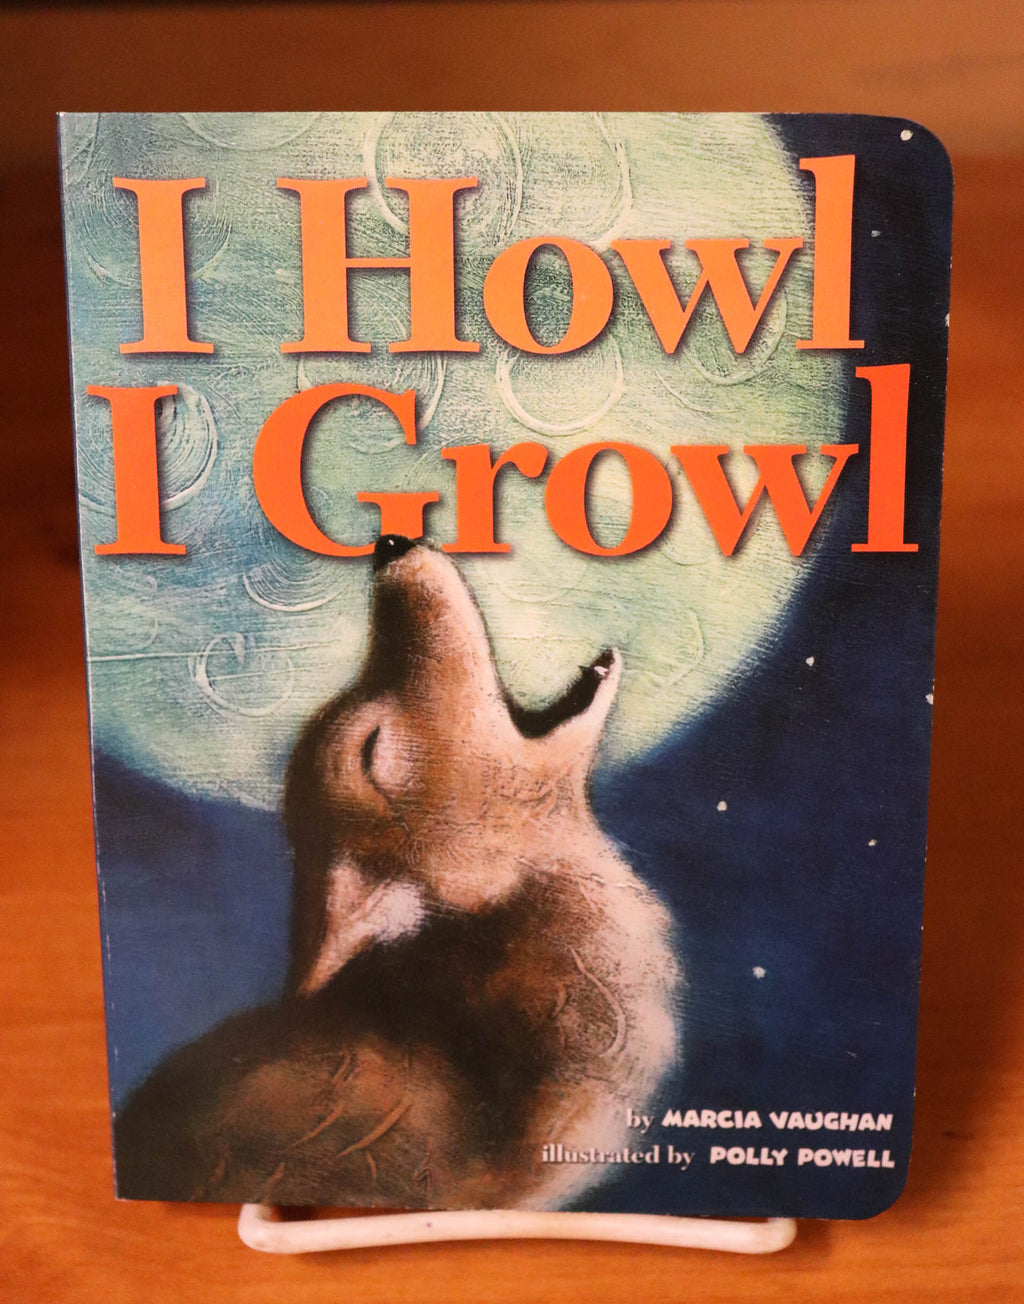 I Howl, I Growl by Marcia Vaughan